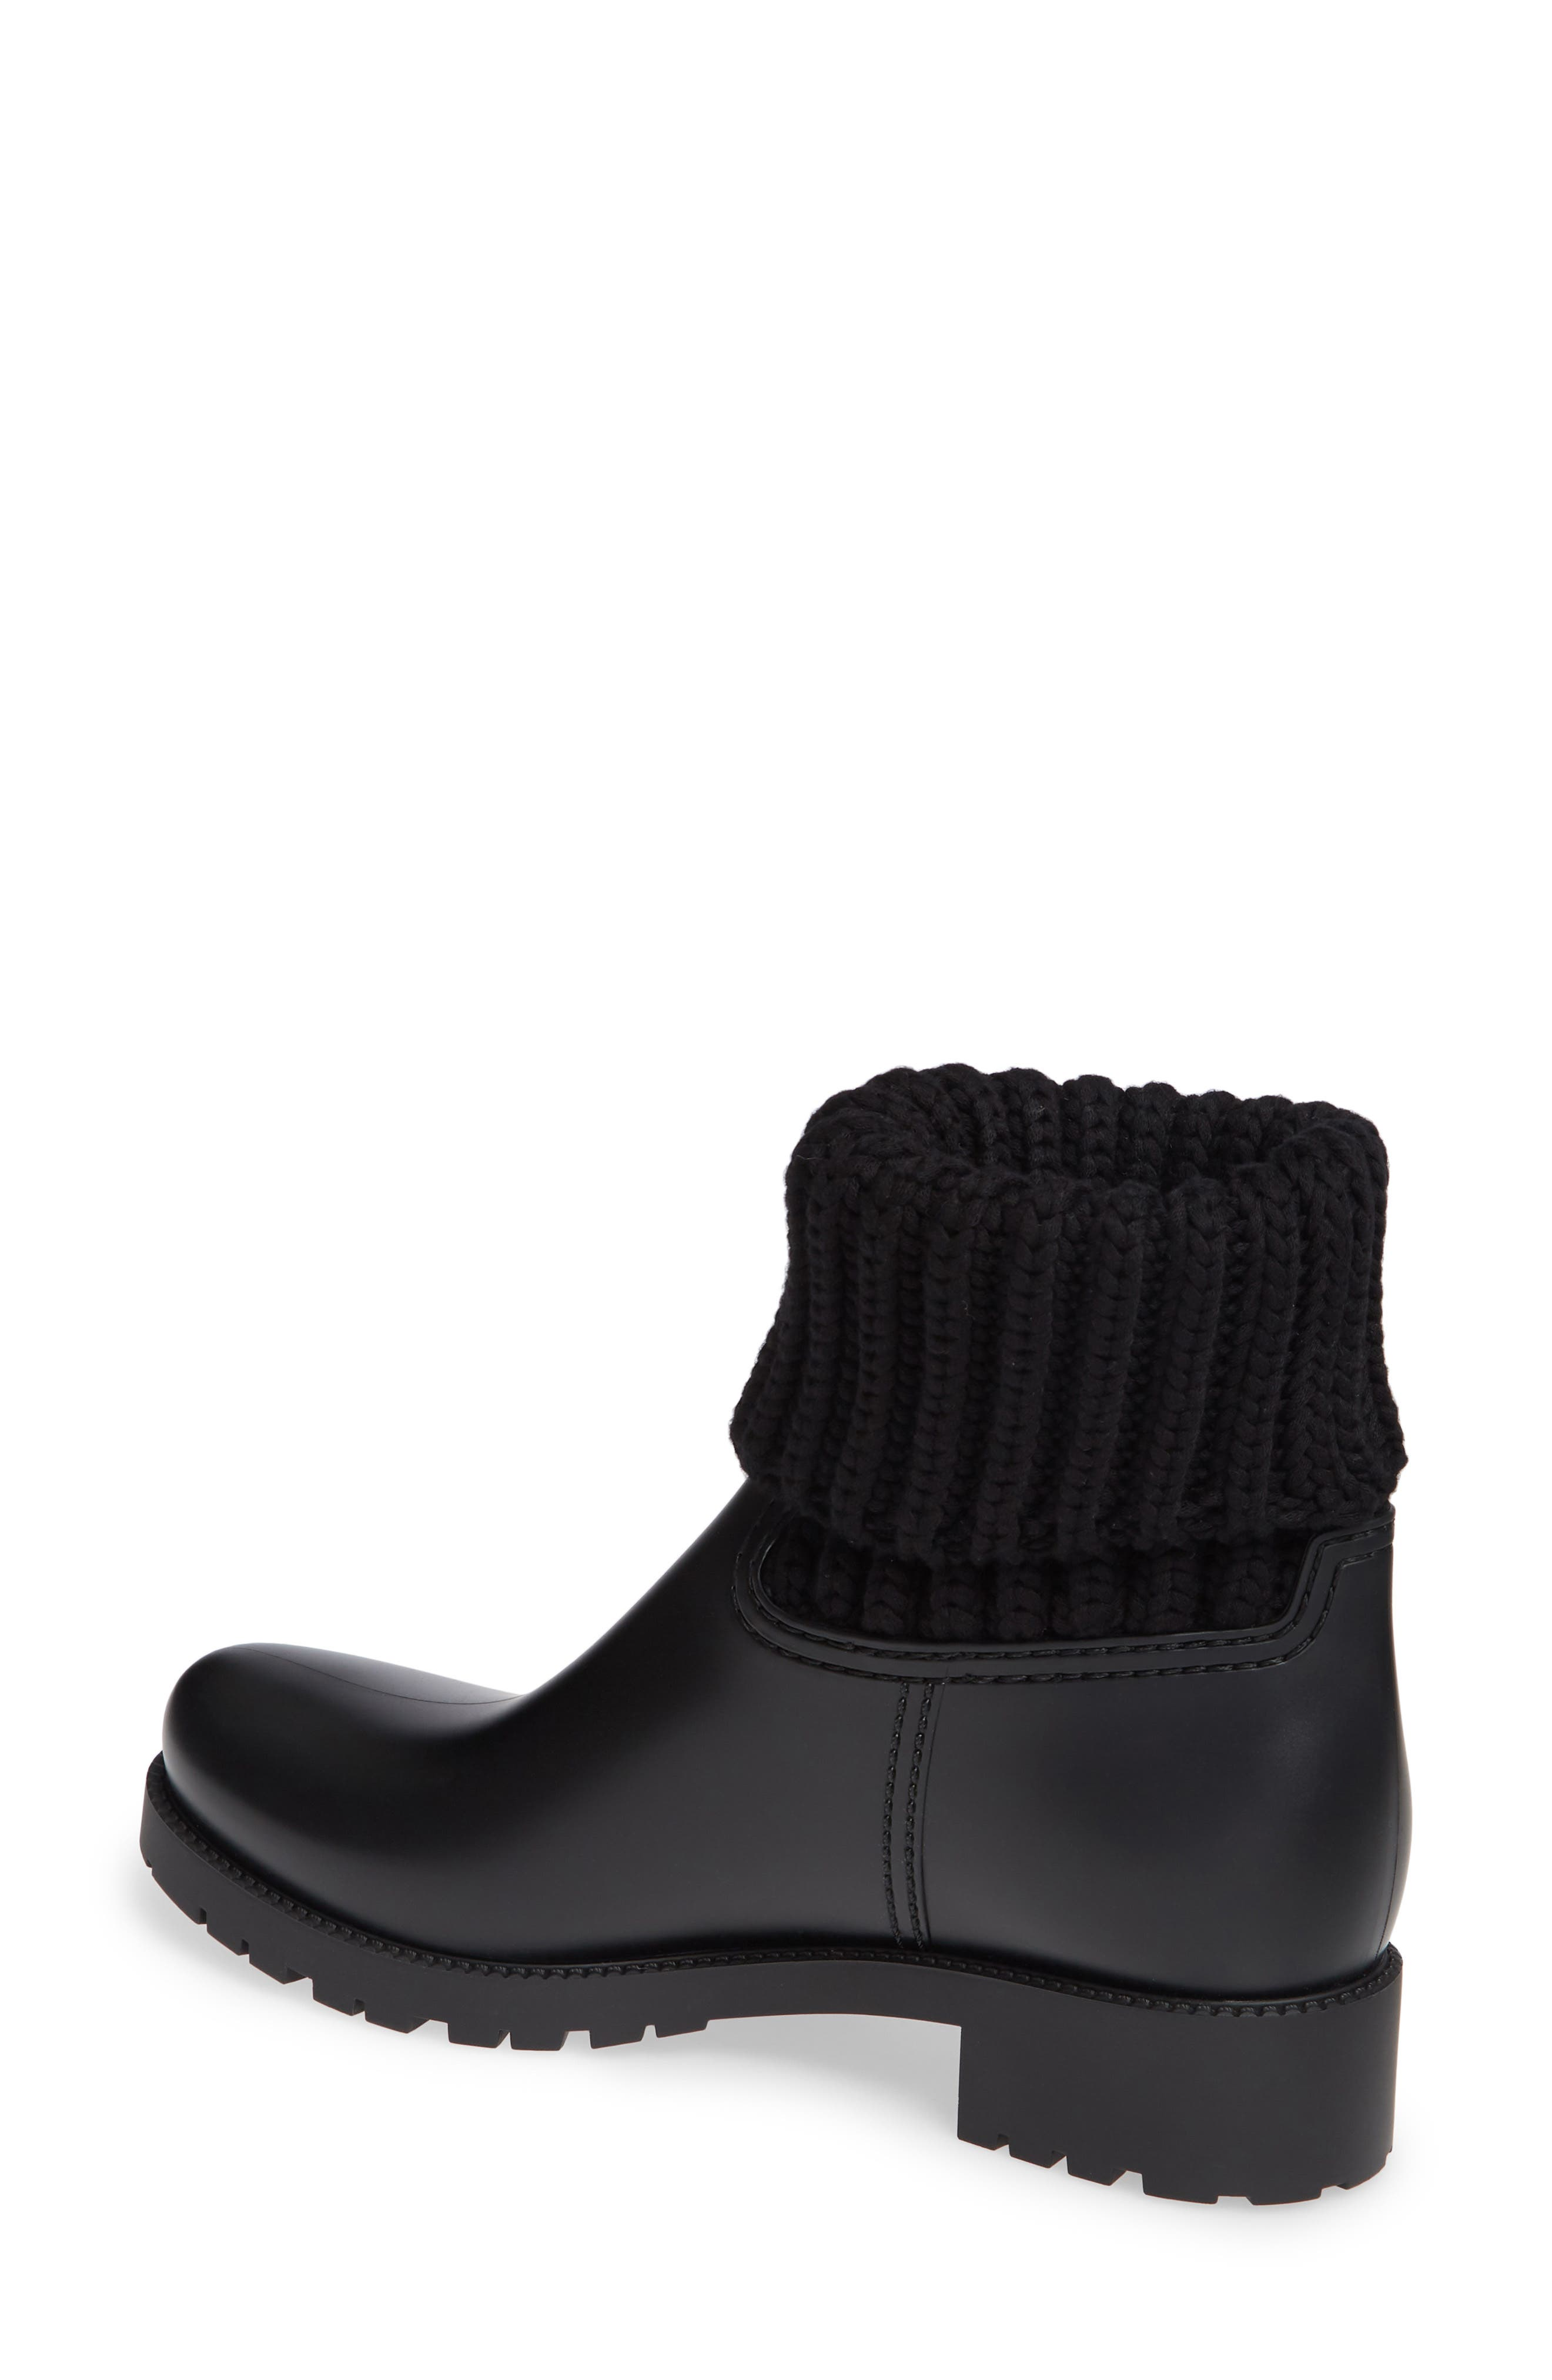 MONCLER, Ginette Stivale Knit Cuff Water Resistant Rain Boot, Alternate thumbnail 2, color, BLACK